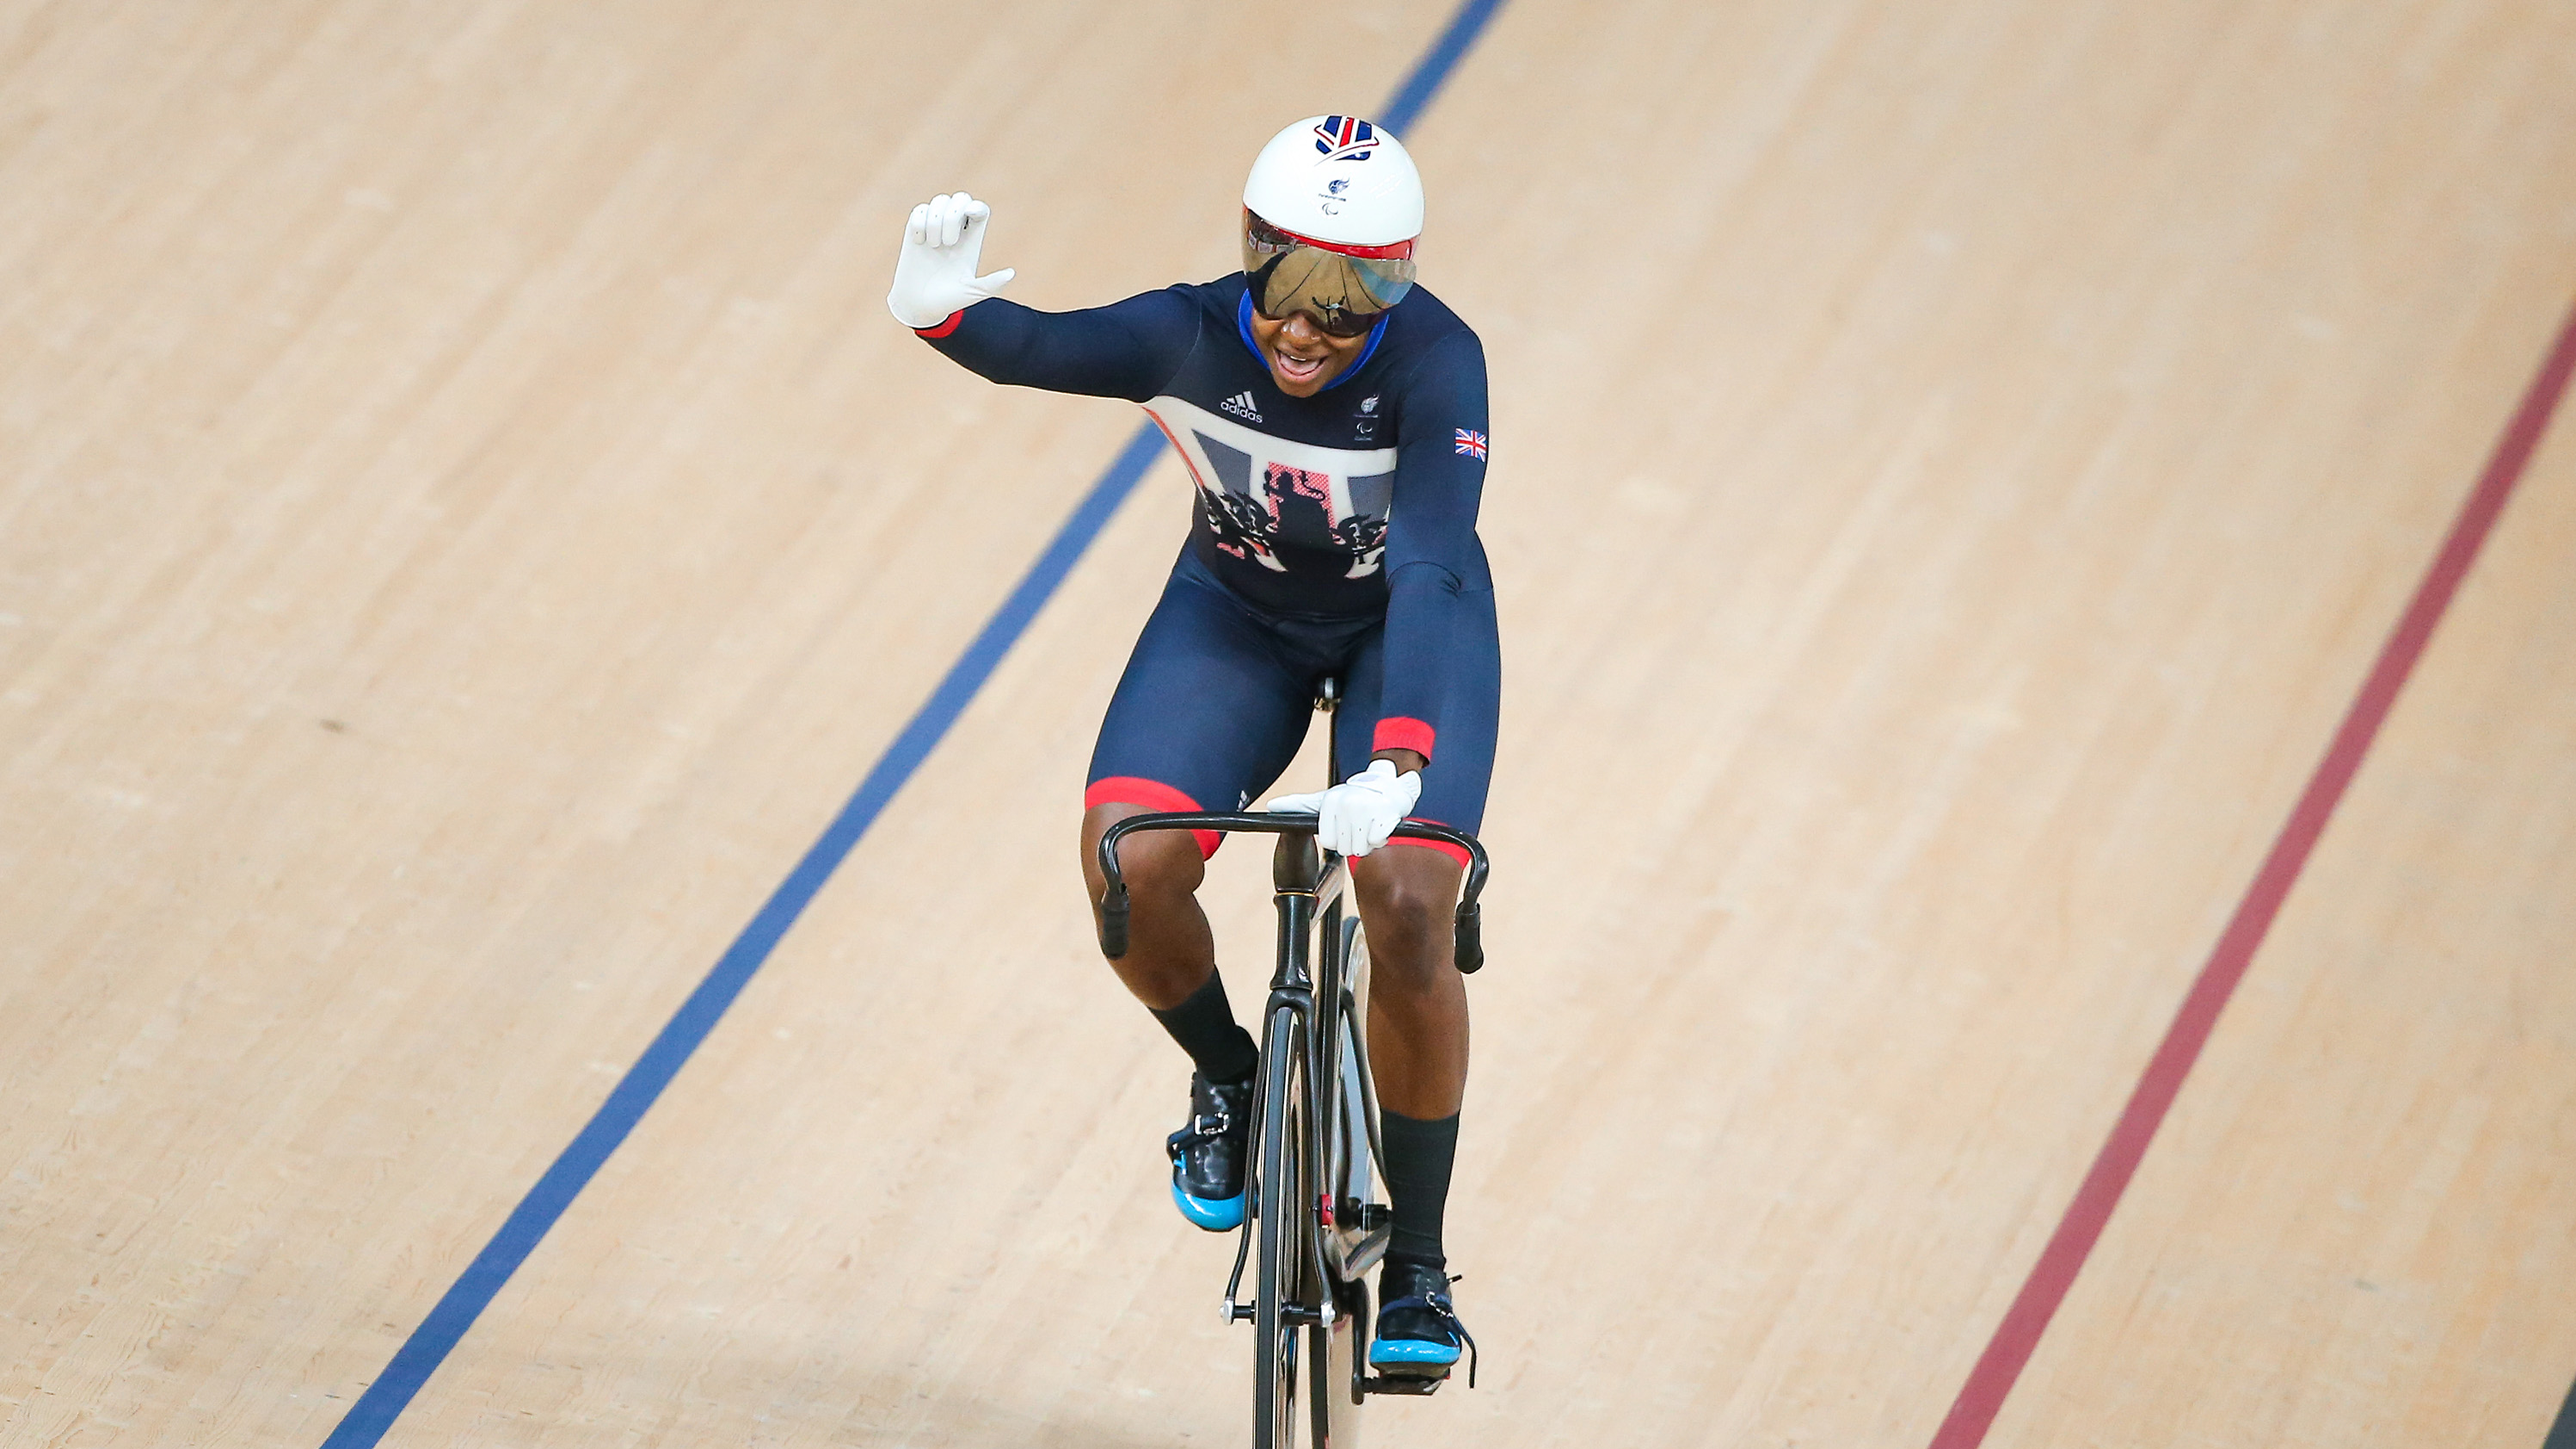 Kadeena Cox wins gold at the Rio Paralympics